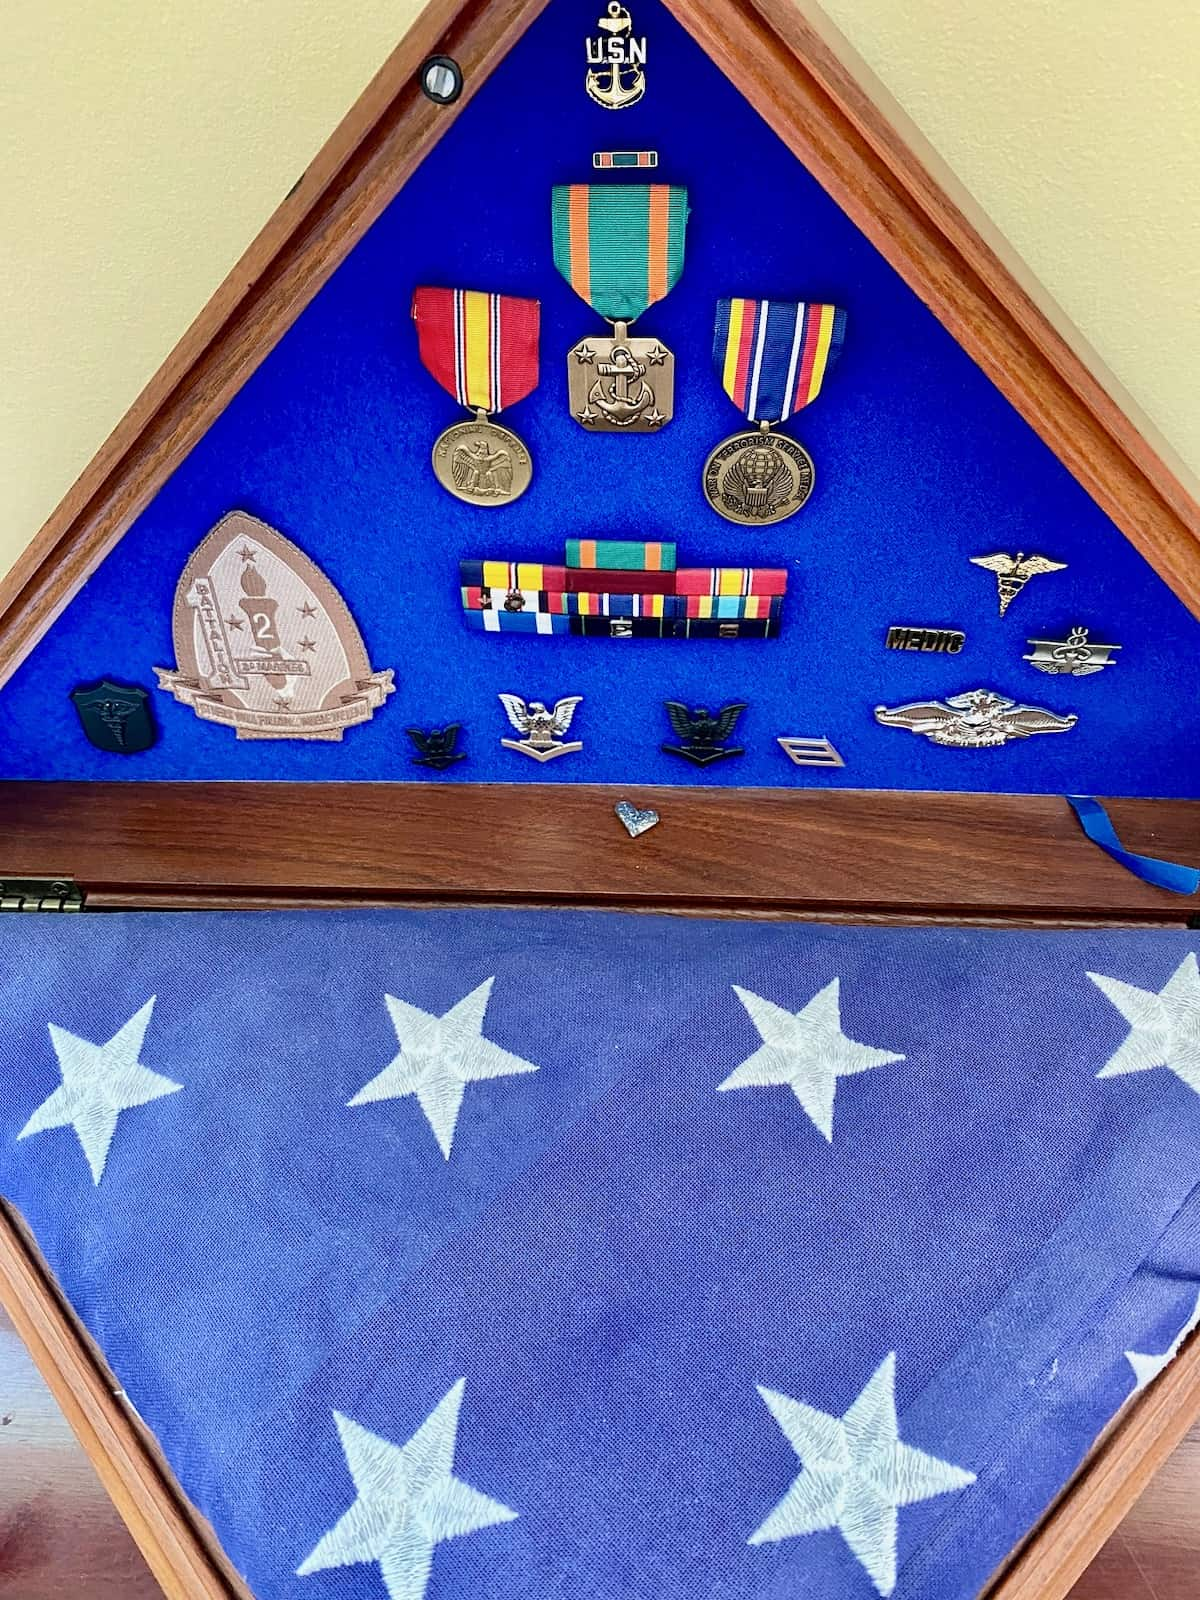 Ten years memorial flag and medals remain on display